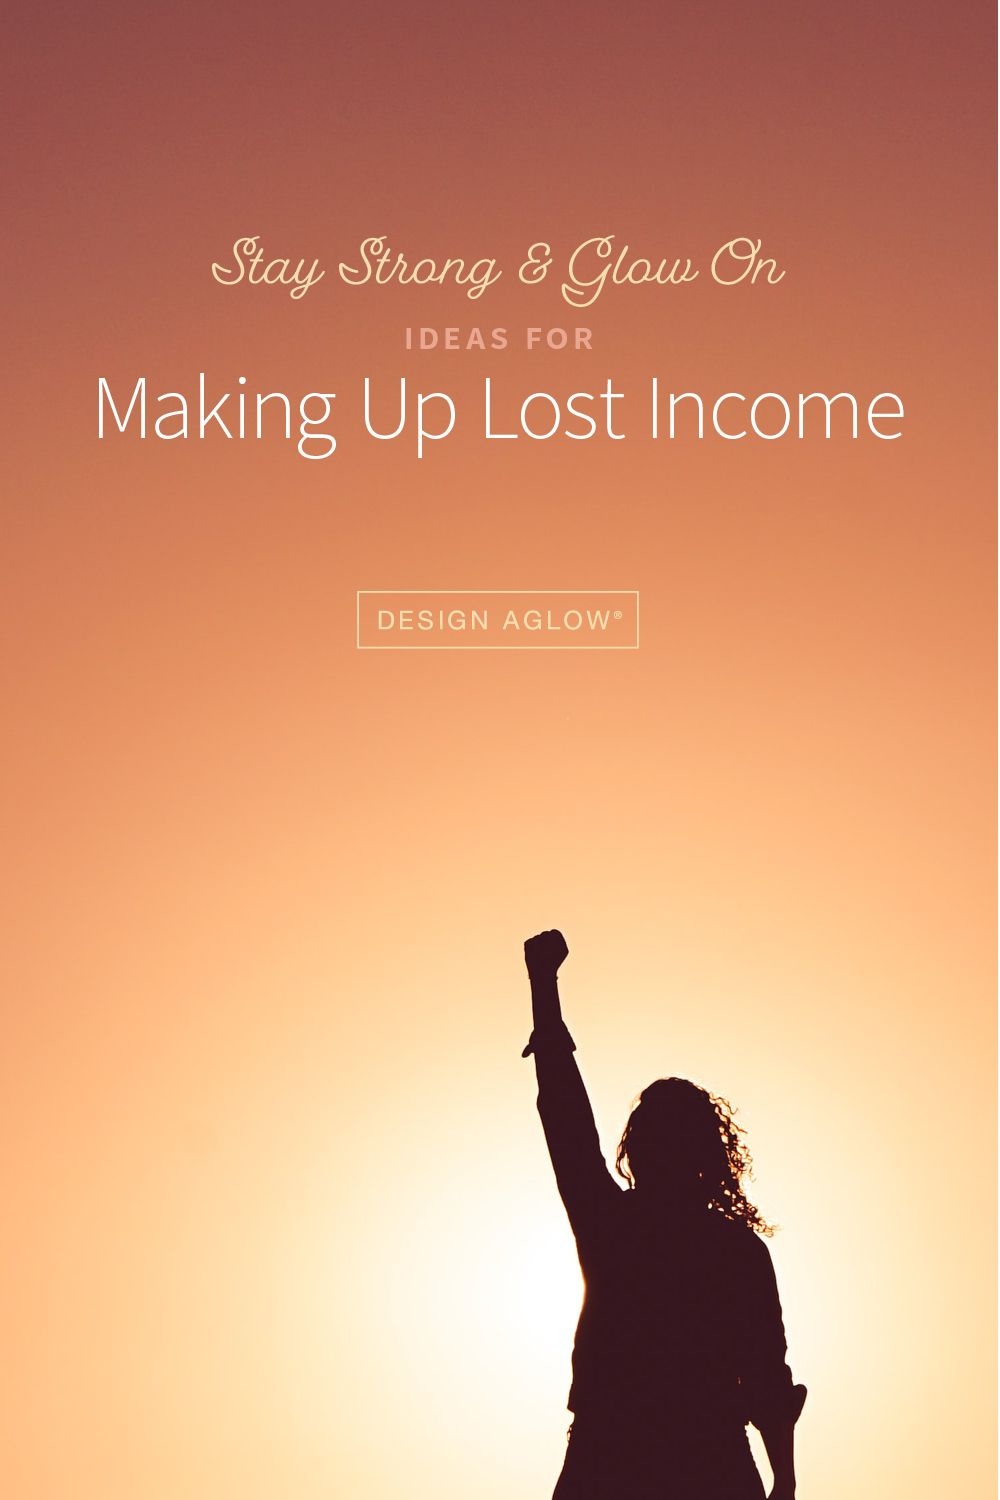 Ideas for Making Up Lost Income